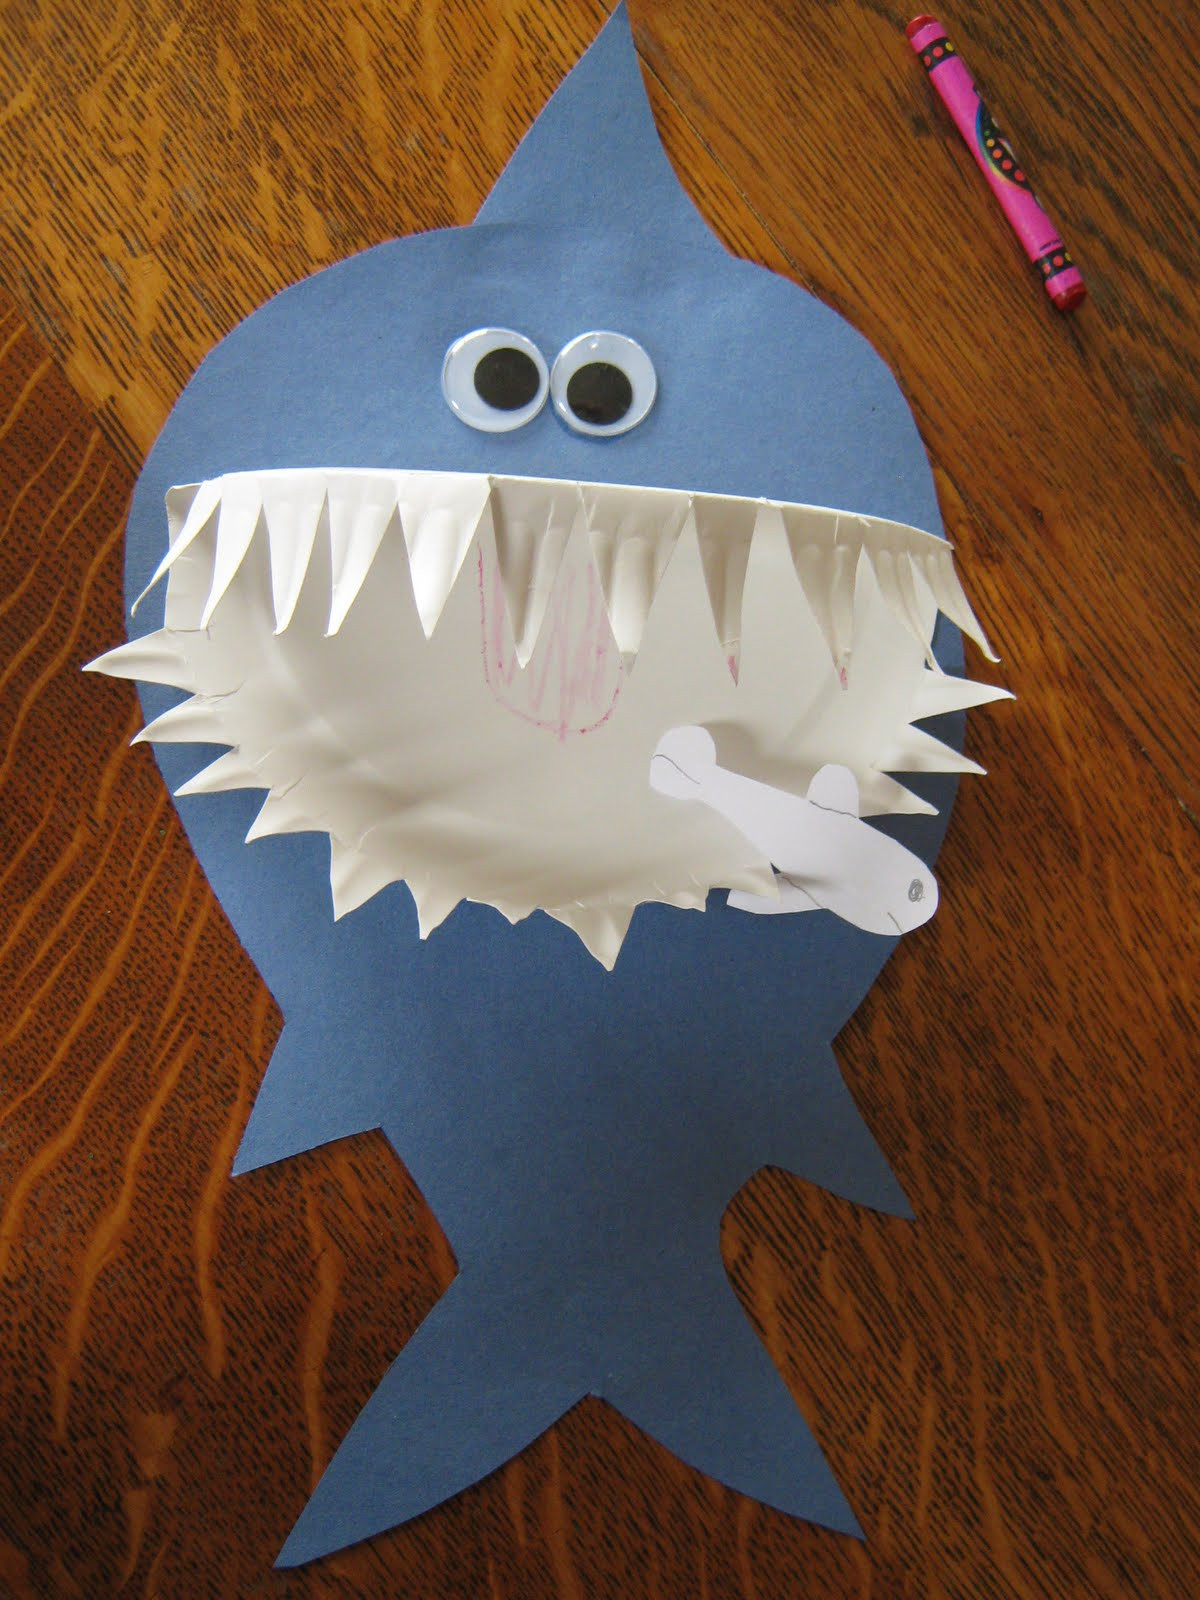 Preschool Projects Ideas  Paper plate crafts for kids A Z C R A F T